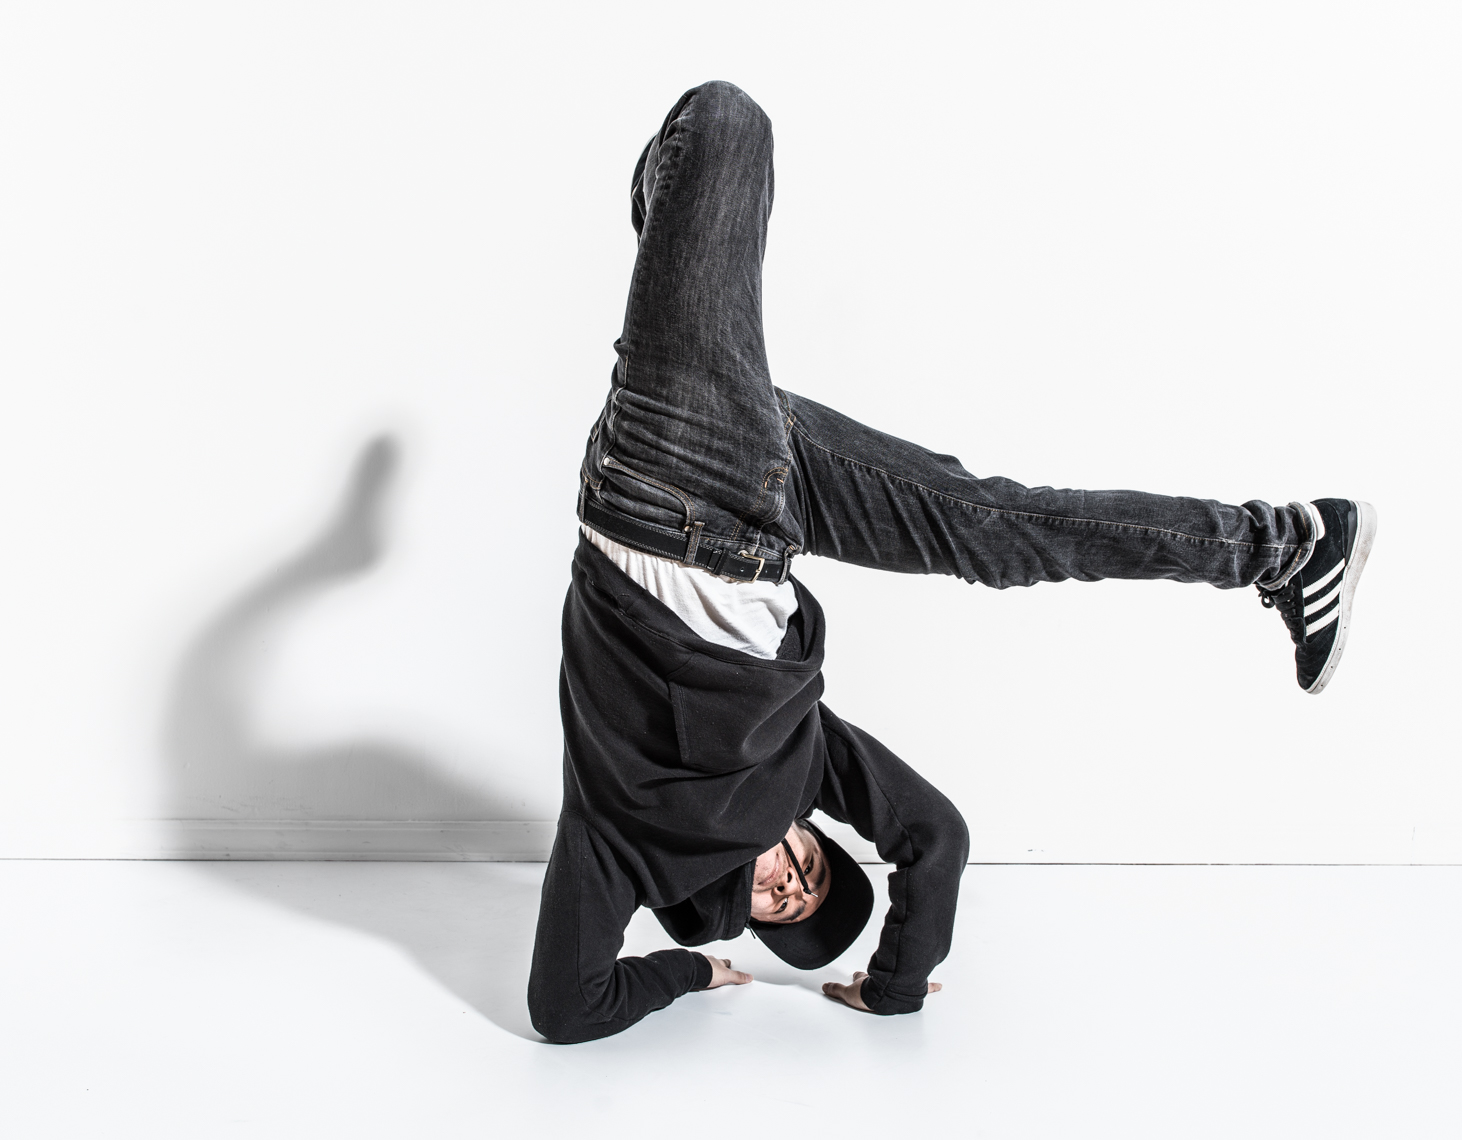 Fumi, Breakdancer, Seattle, WA, USA